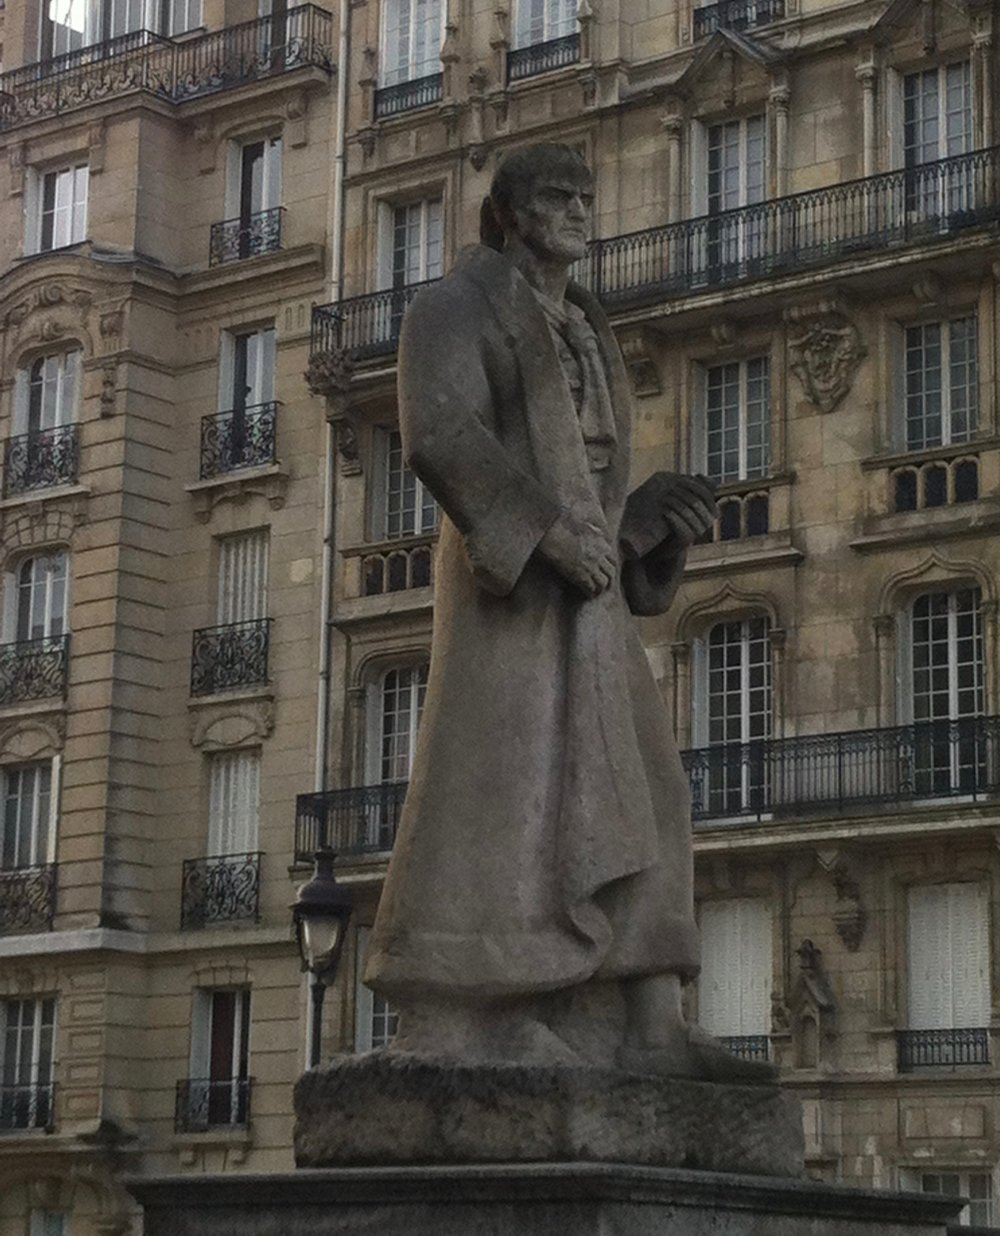 Statue of Jean-Jacques Rousseau outside the Pantheon in Paris. Image by Rachel Hammersley.